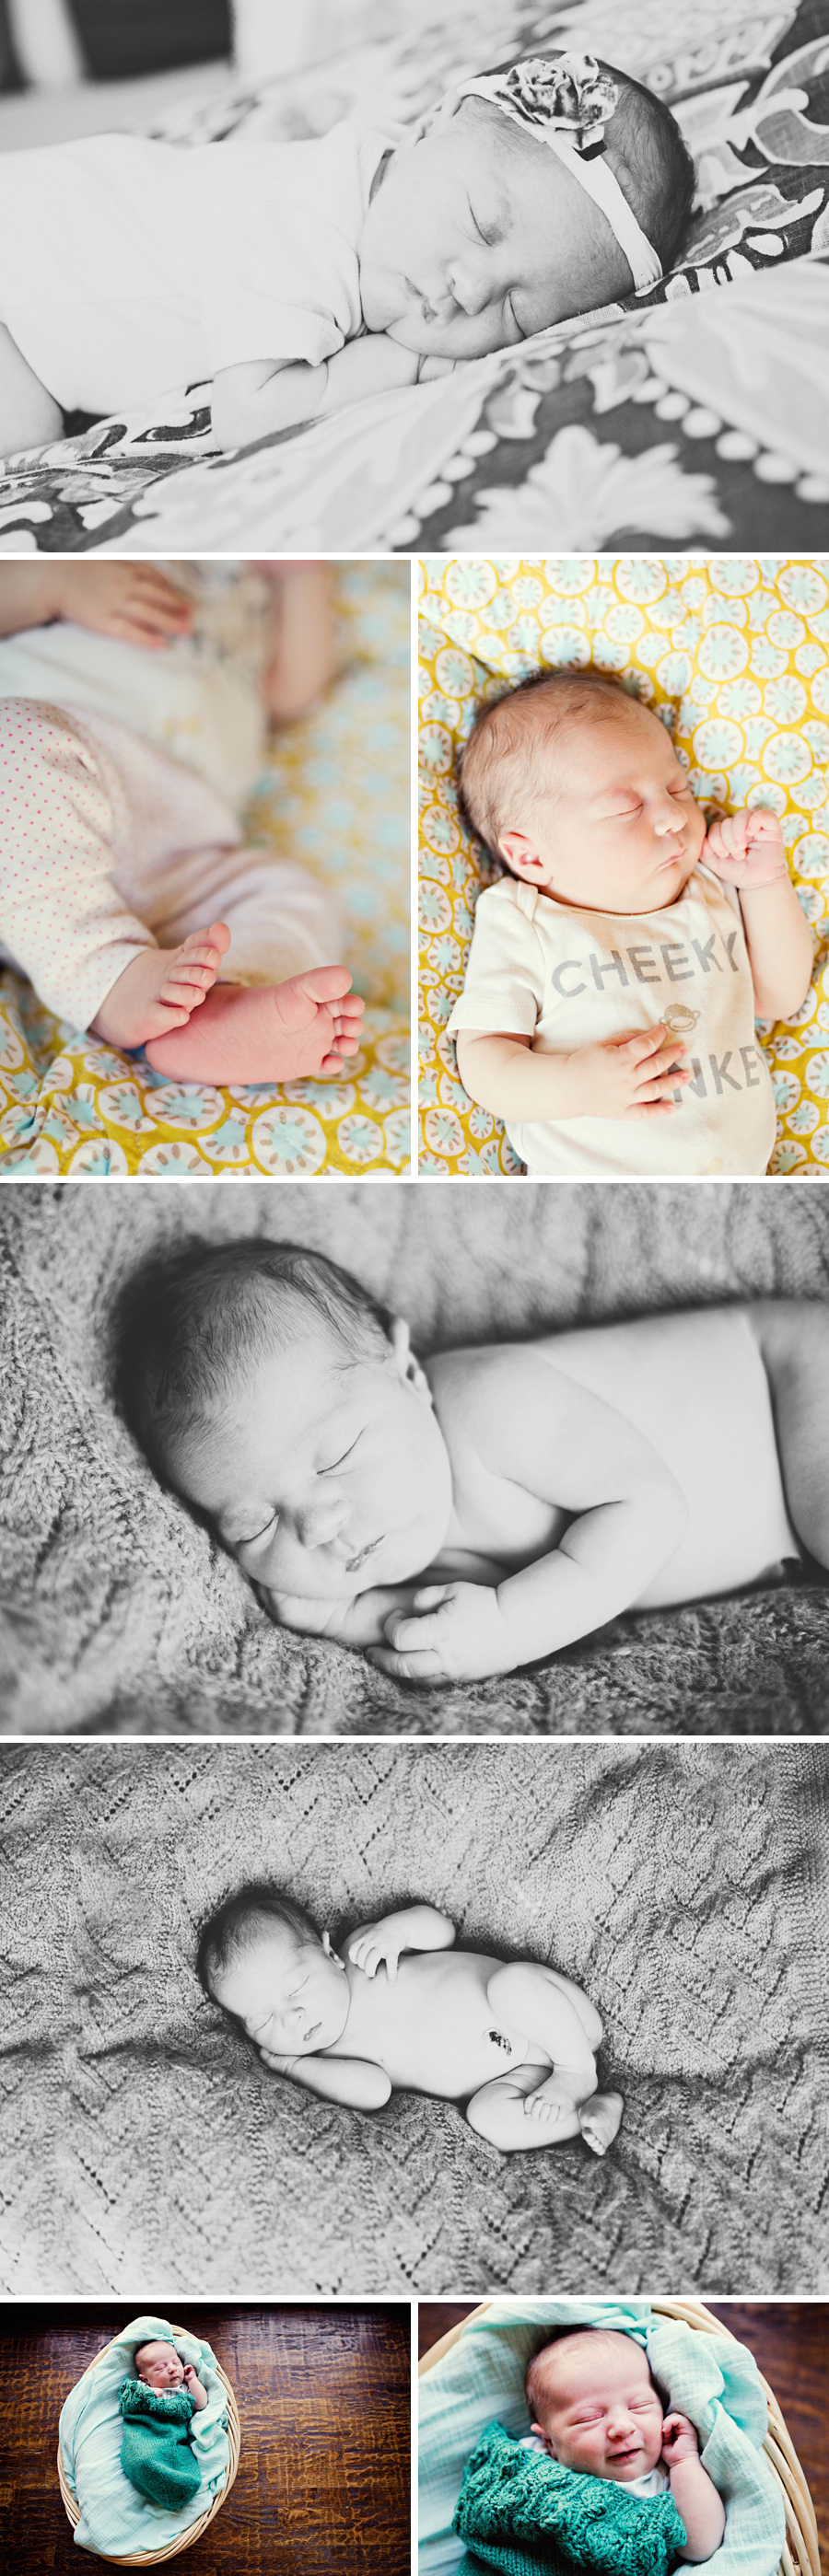 Dallas-Newborn-Photographerc014